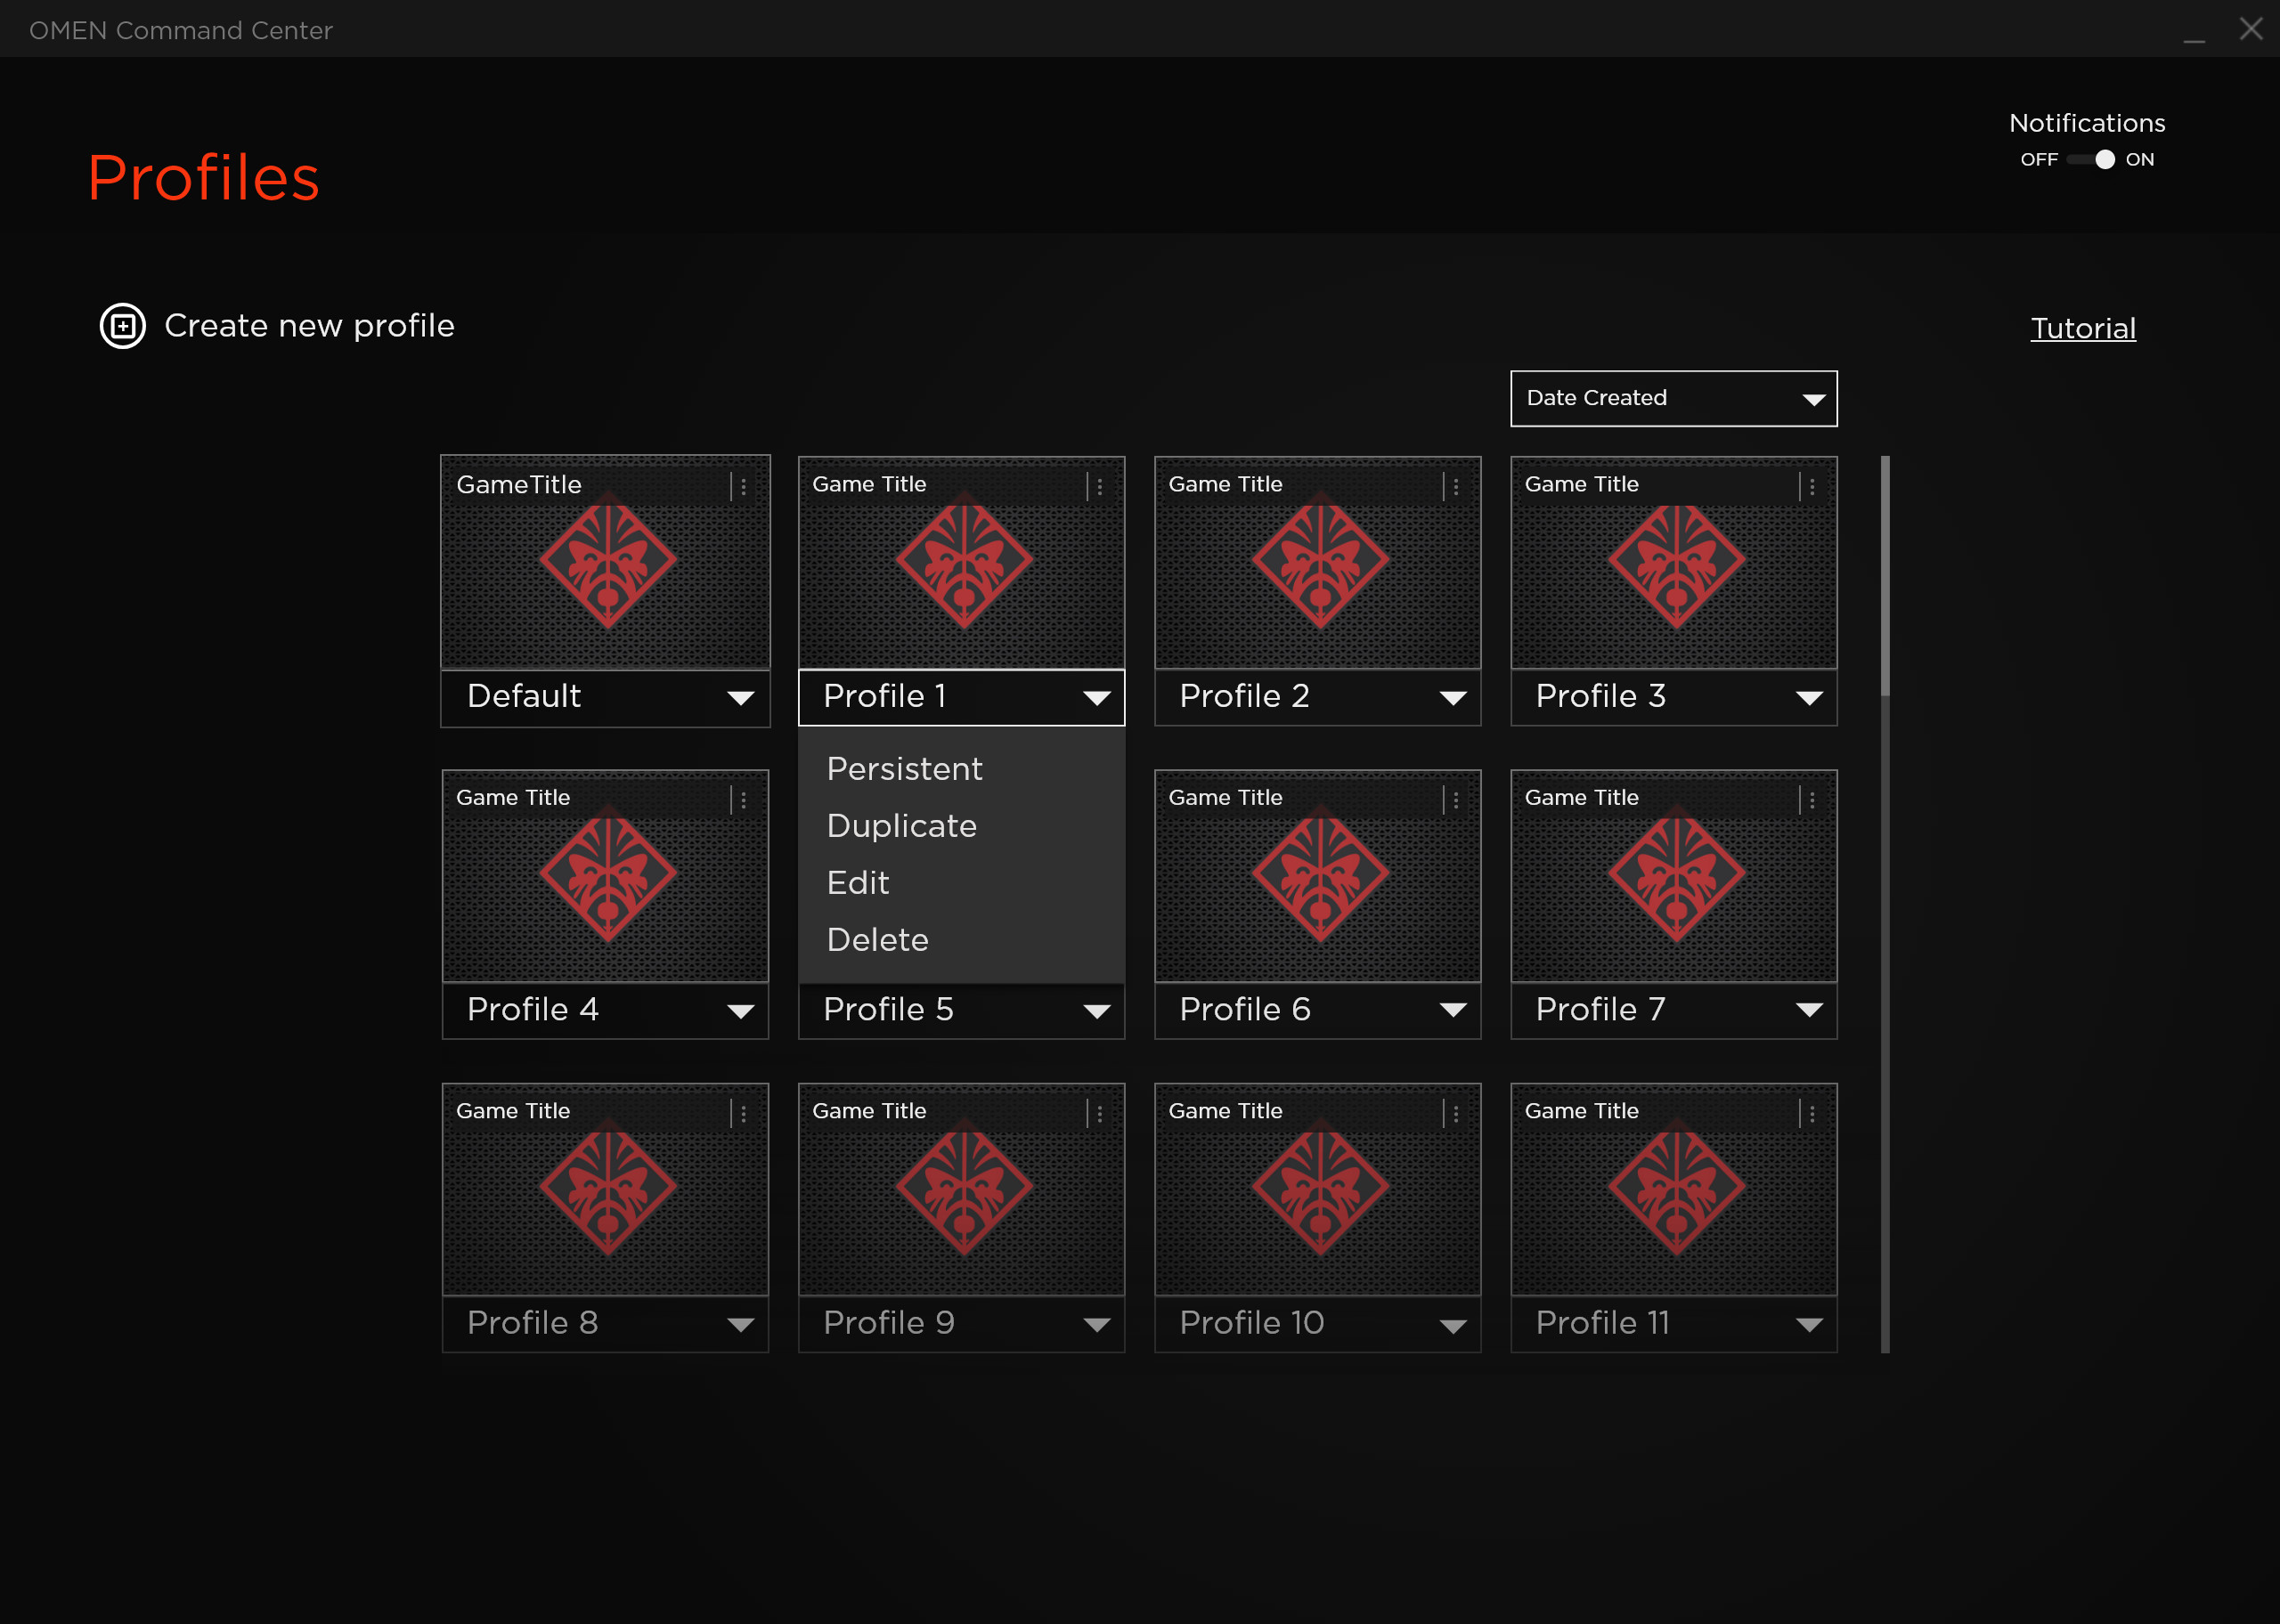 HP's OMEN Command Center gets an AI coach for gaming and